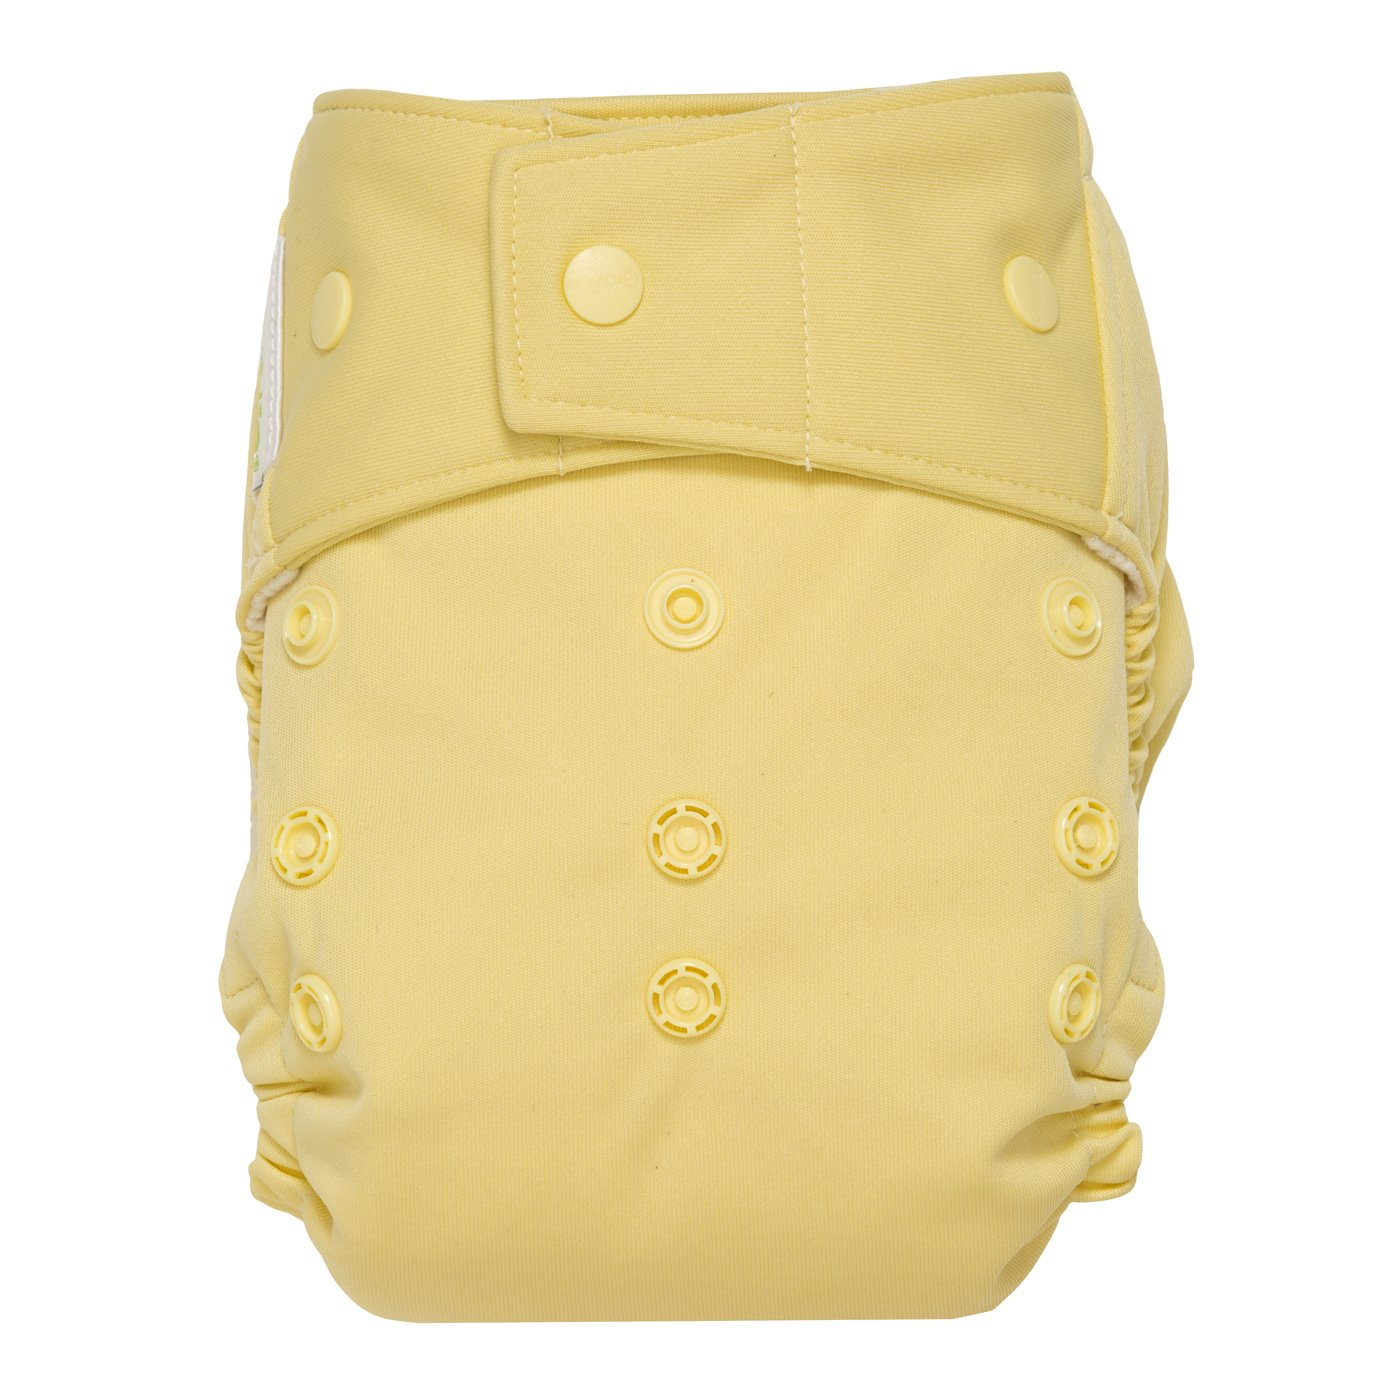 GroVia® Hybrid One-Size Cloth Nappy Shell, Snaps, Chiffon The Natural Baby Company PO#384